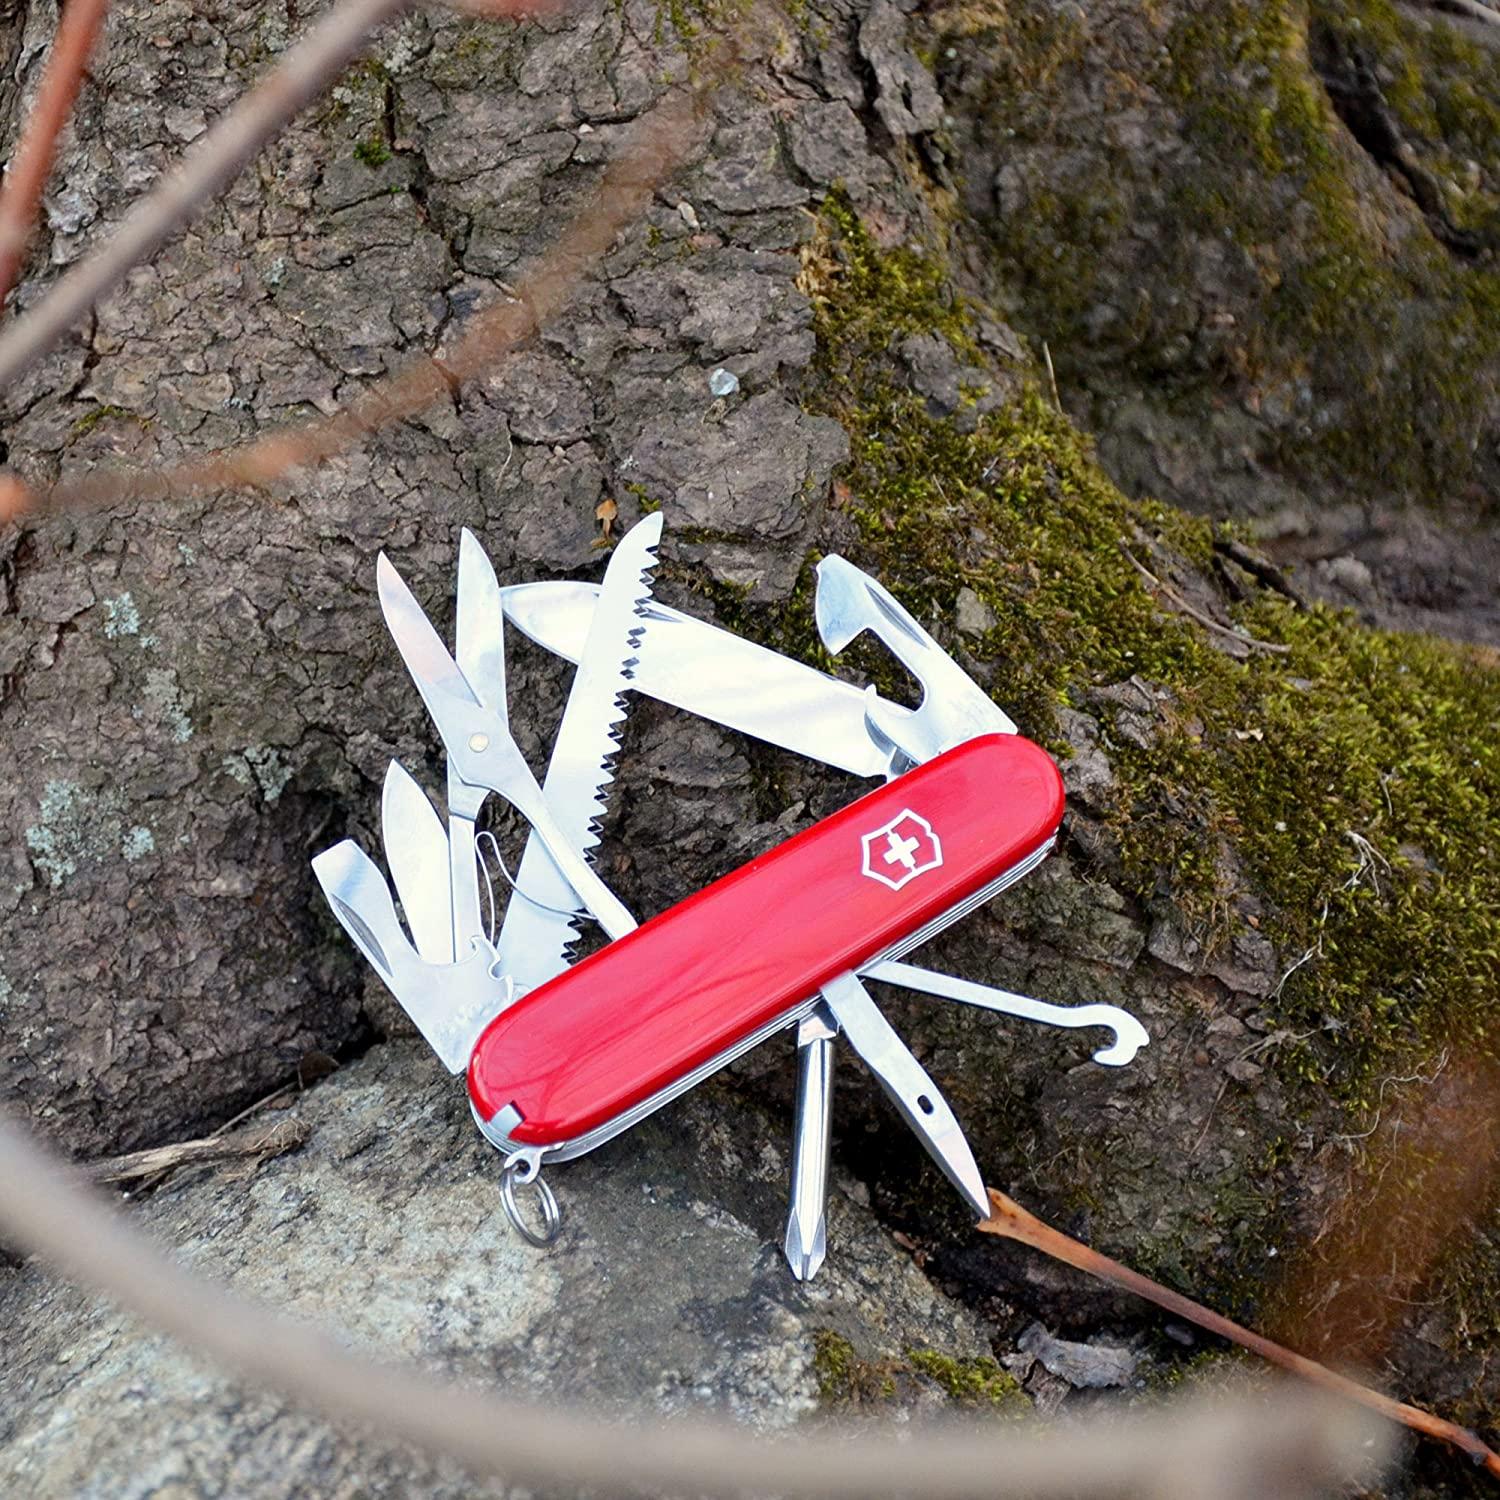 Fieldmaster Multi-Tool Knife with parcel carrier